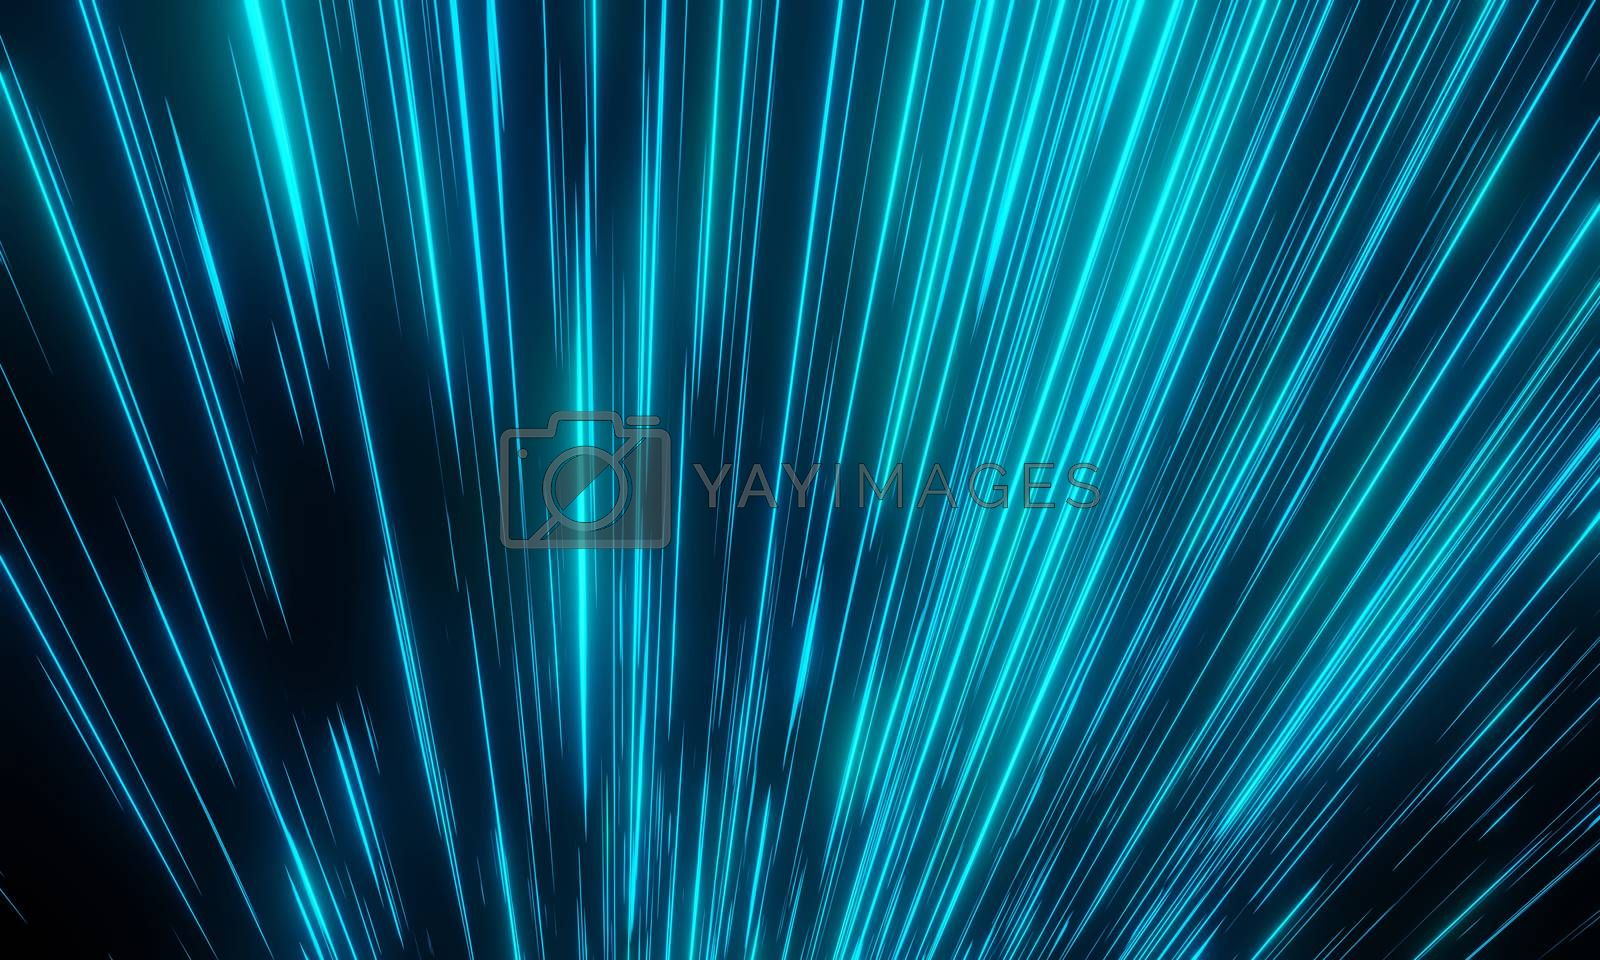 blue light with glowing look like stardust or Meteor and stripes moving fast over dark background for cyber space and hyper space moving concept. 3D Rendering.